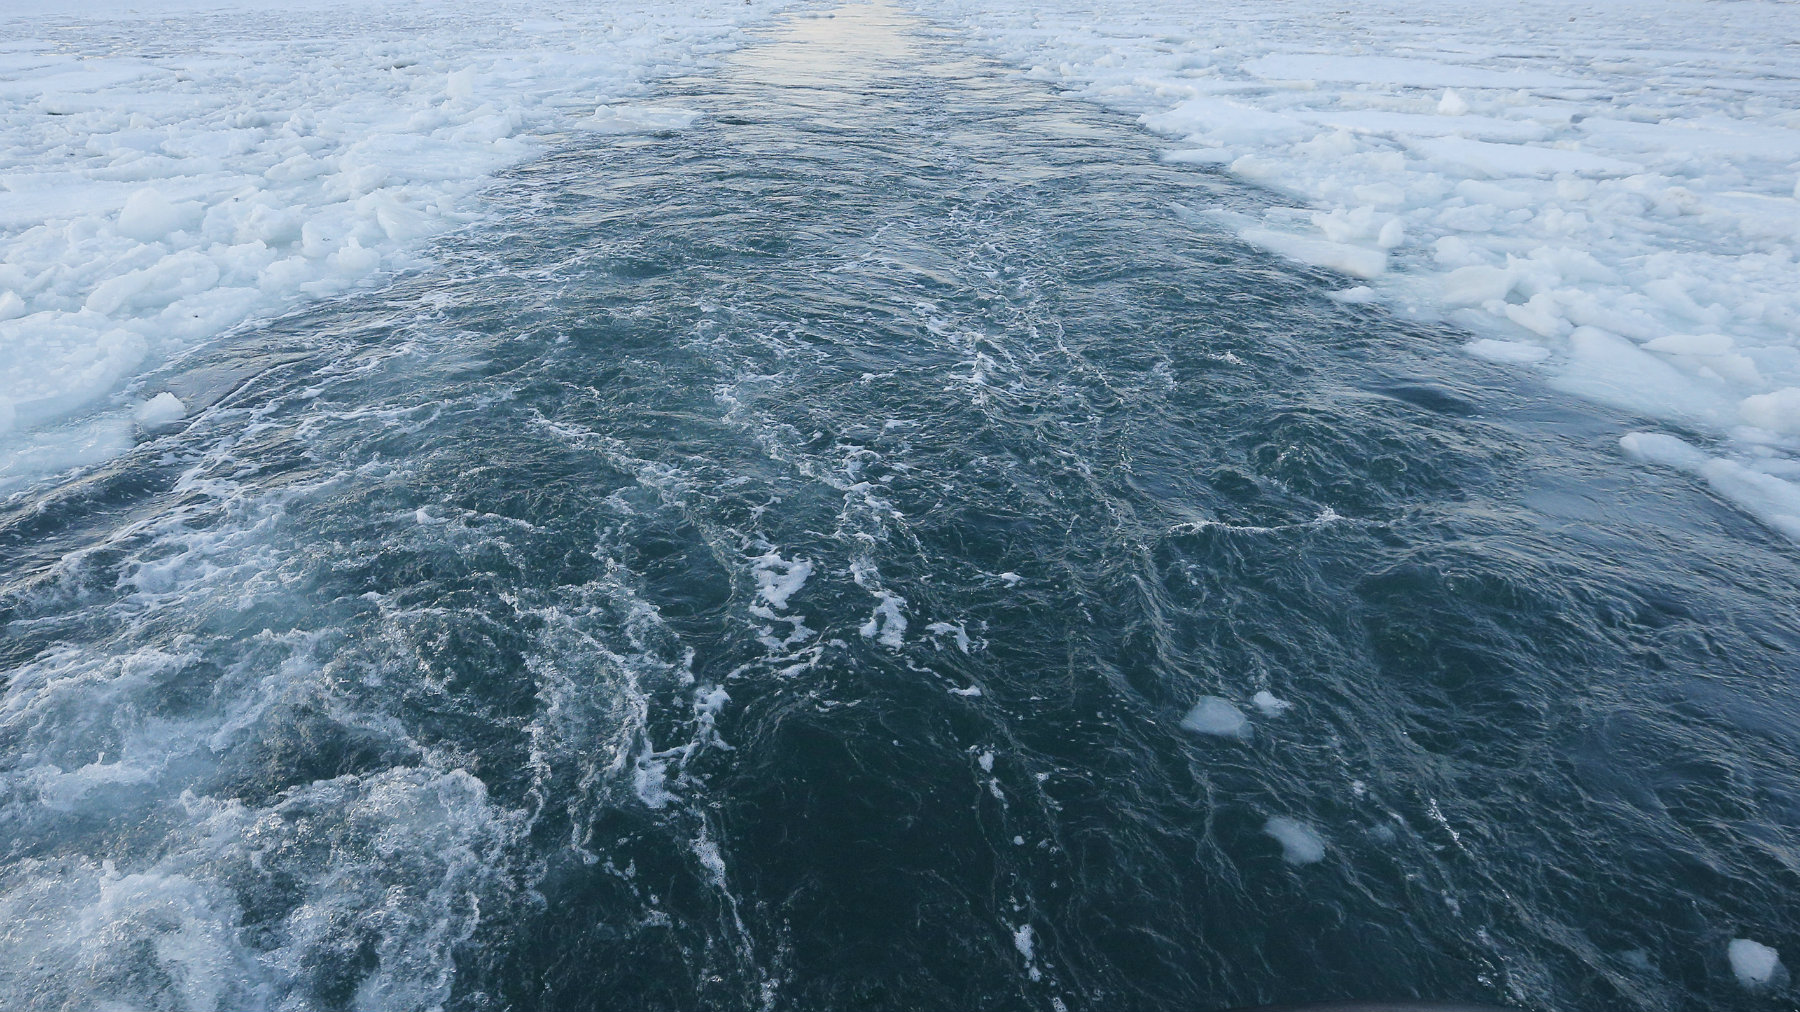 The Warren Jr., a 150 foot offshore supply boat, cuts a path through the ice as it works as an ice breaker for the commuter ferry in the waters off Hingham, Massachusetts, March 3, 2015. With its black hull rumbling against a field of broken ice, the Warren Jr. slowly eased away from a dock in the Boston suburb of Hingham on Tuesday, aiming to clear a path for some of the four ferries that carry commuters from here into the city each day. But in a sign of how long Massachusetts has been gripped by freezing temperatures, no other vessels followed, as the tide narrowed the channel behind the ocean-going supply boat pressed into service as an icebreaker. It was the 15th day of canceled ferry service since late January and the outing was meant to speed the fleet's return to service, which could still be days away. REUTERS/Brian Snyder (UNITED STATES - Tags: ENVIRONMENT TRANSPORT)